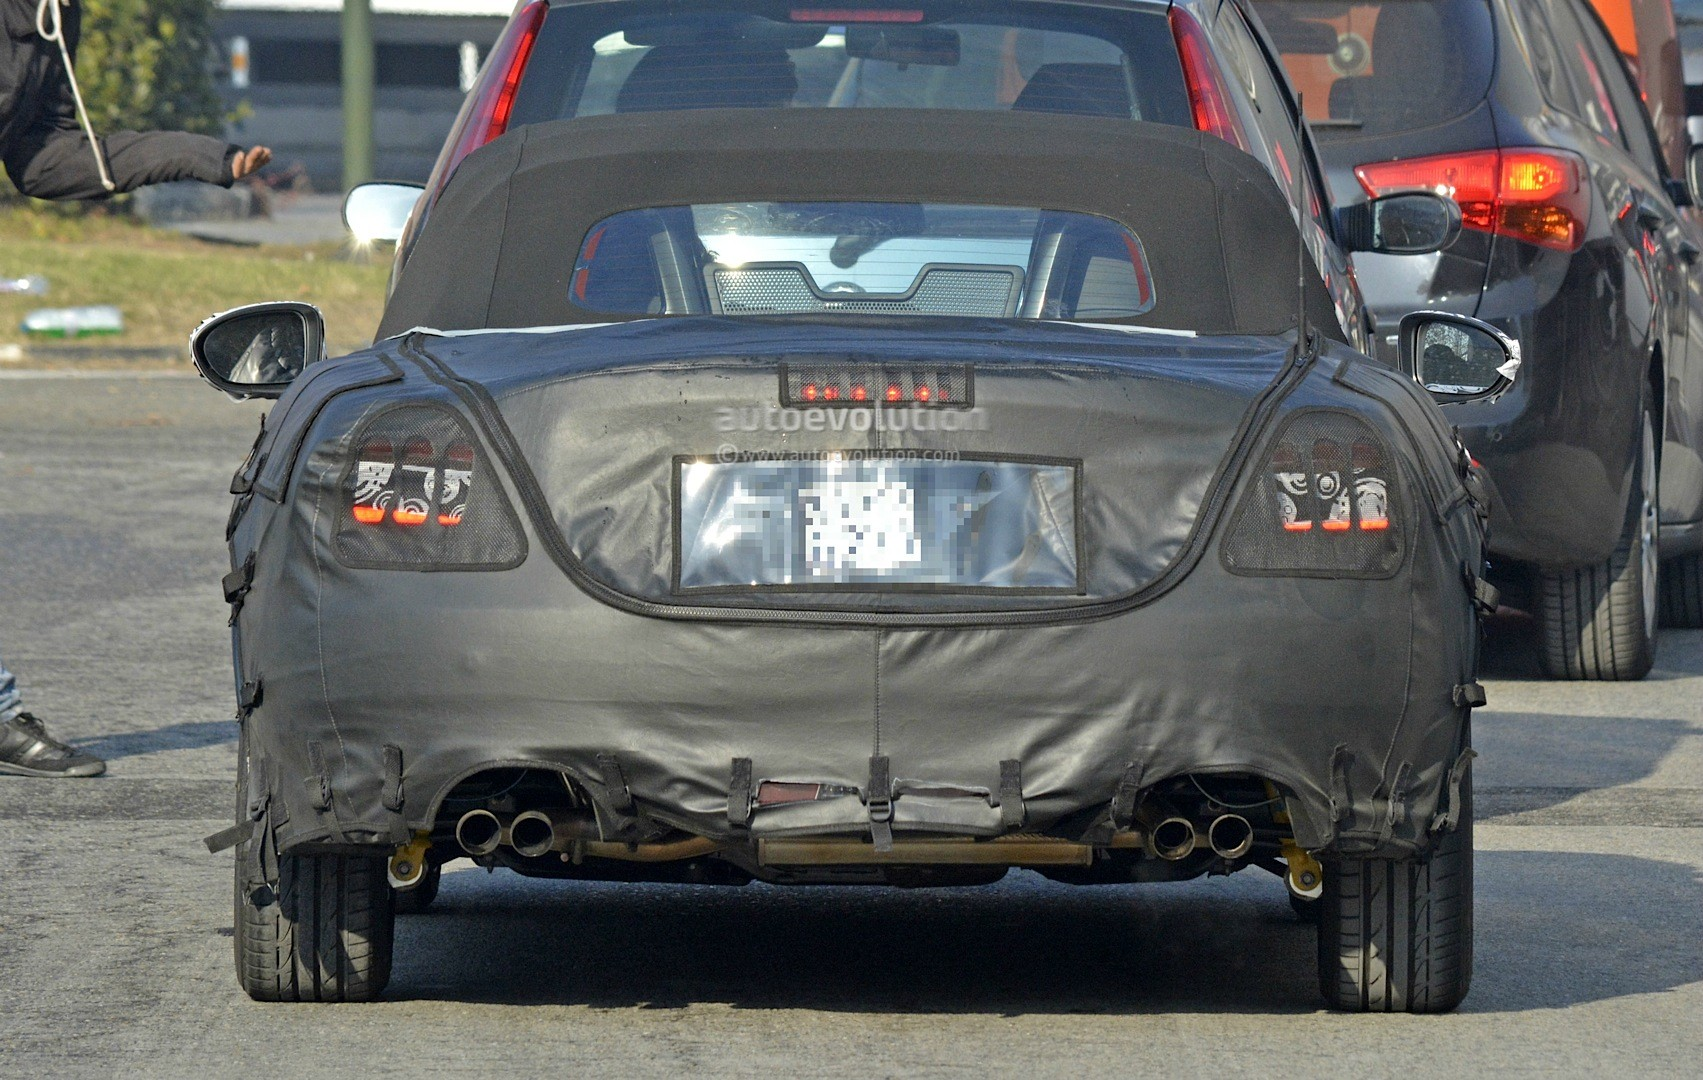 abarth hot version of fiat 124 spider spied for the first time with quad exhaust autoevolution. Black Bedroom Furniture Sets. Home Design Ideas